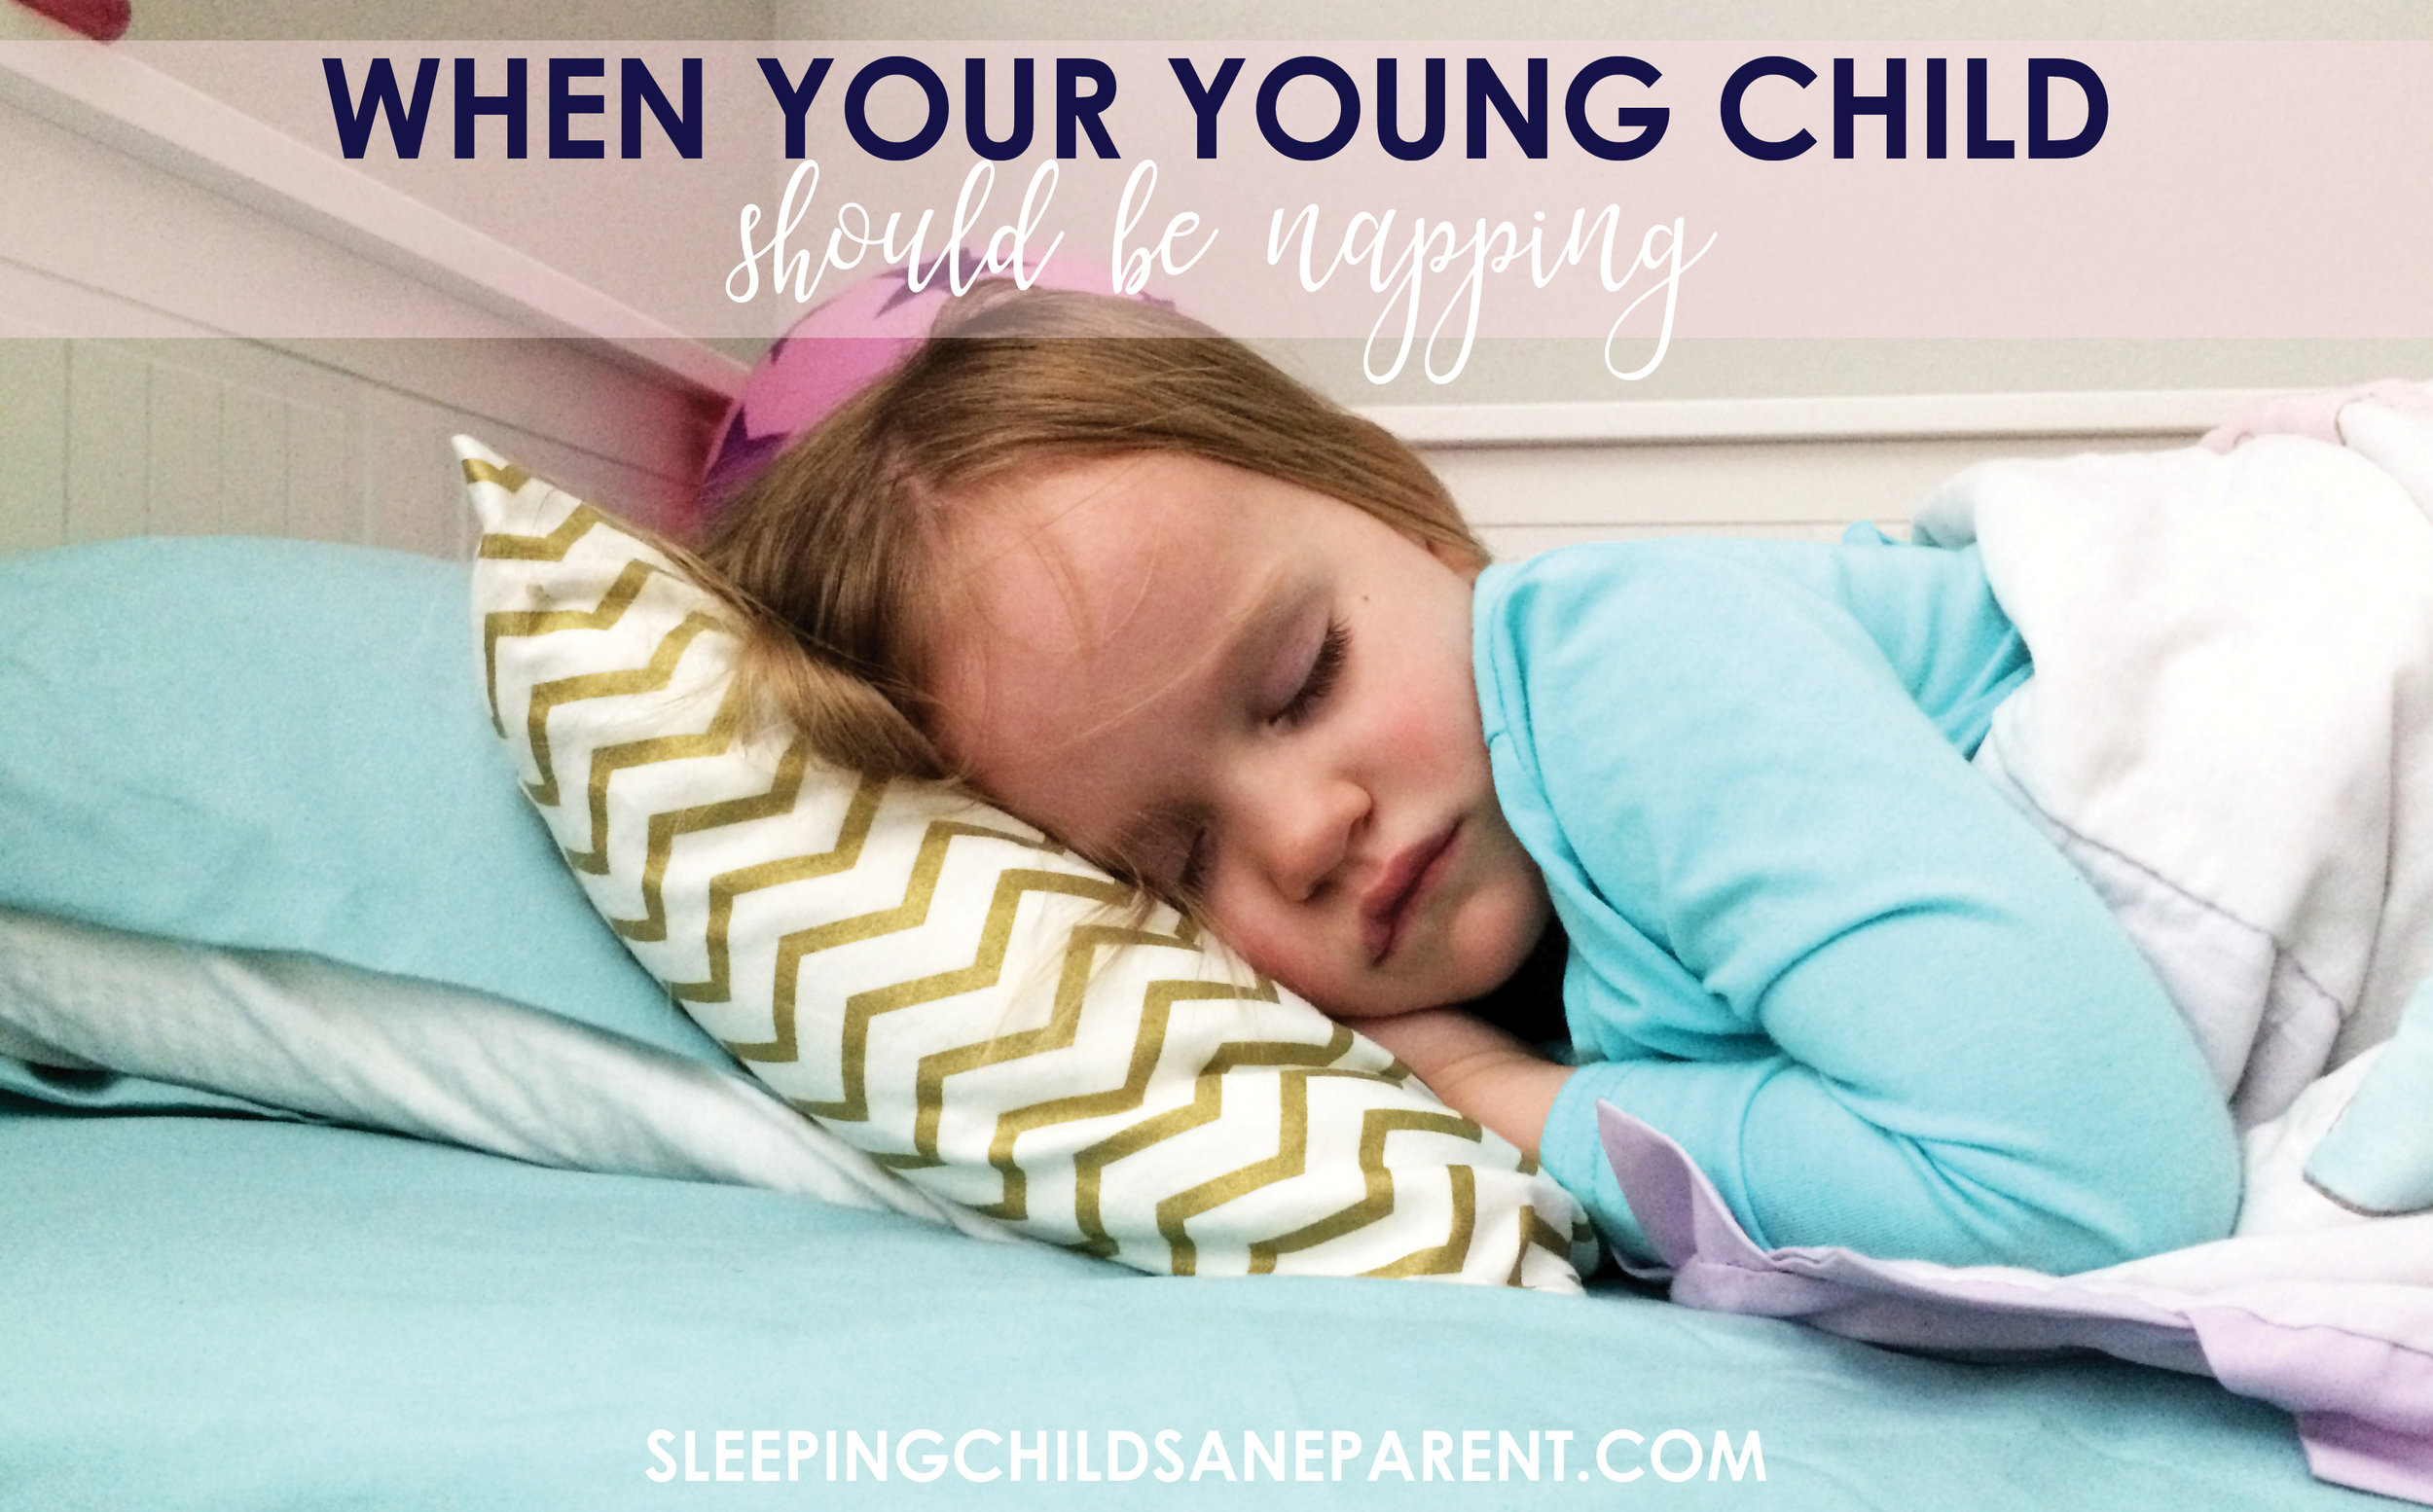 Don't succumb to the trap of giving up your child's nap too early — instead, make sure your child is on an age-appropriate schedule and then hold onto that afternoon nap as looooong as possible!